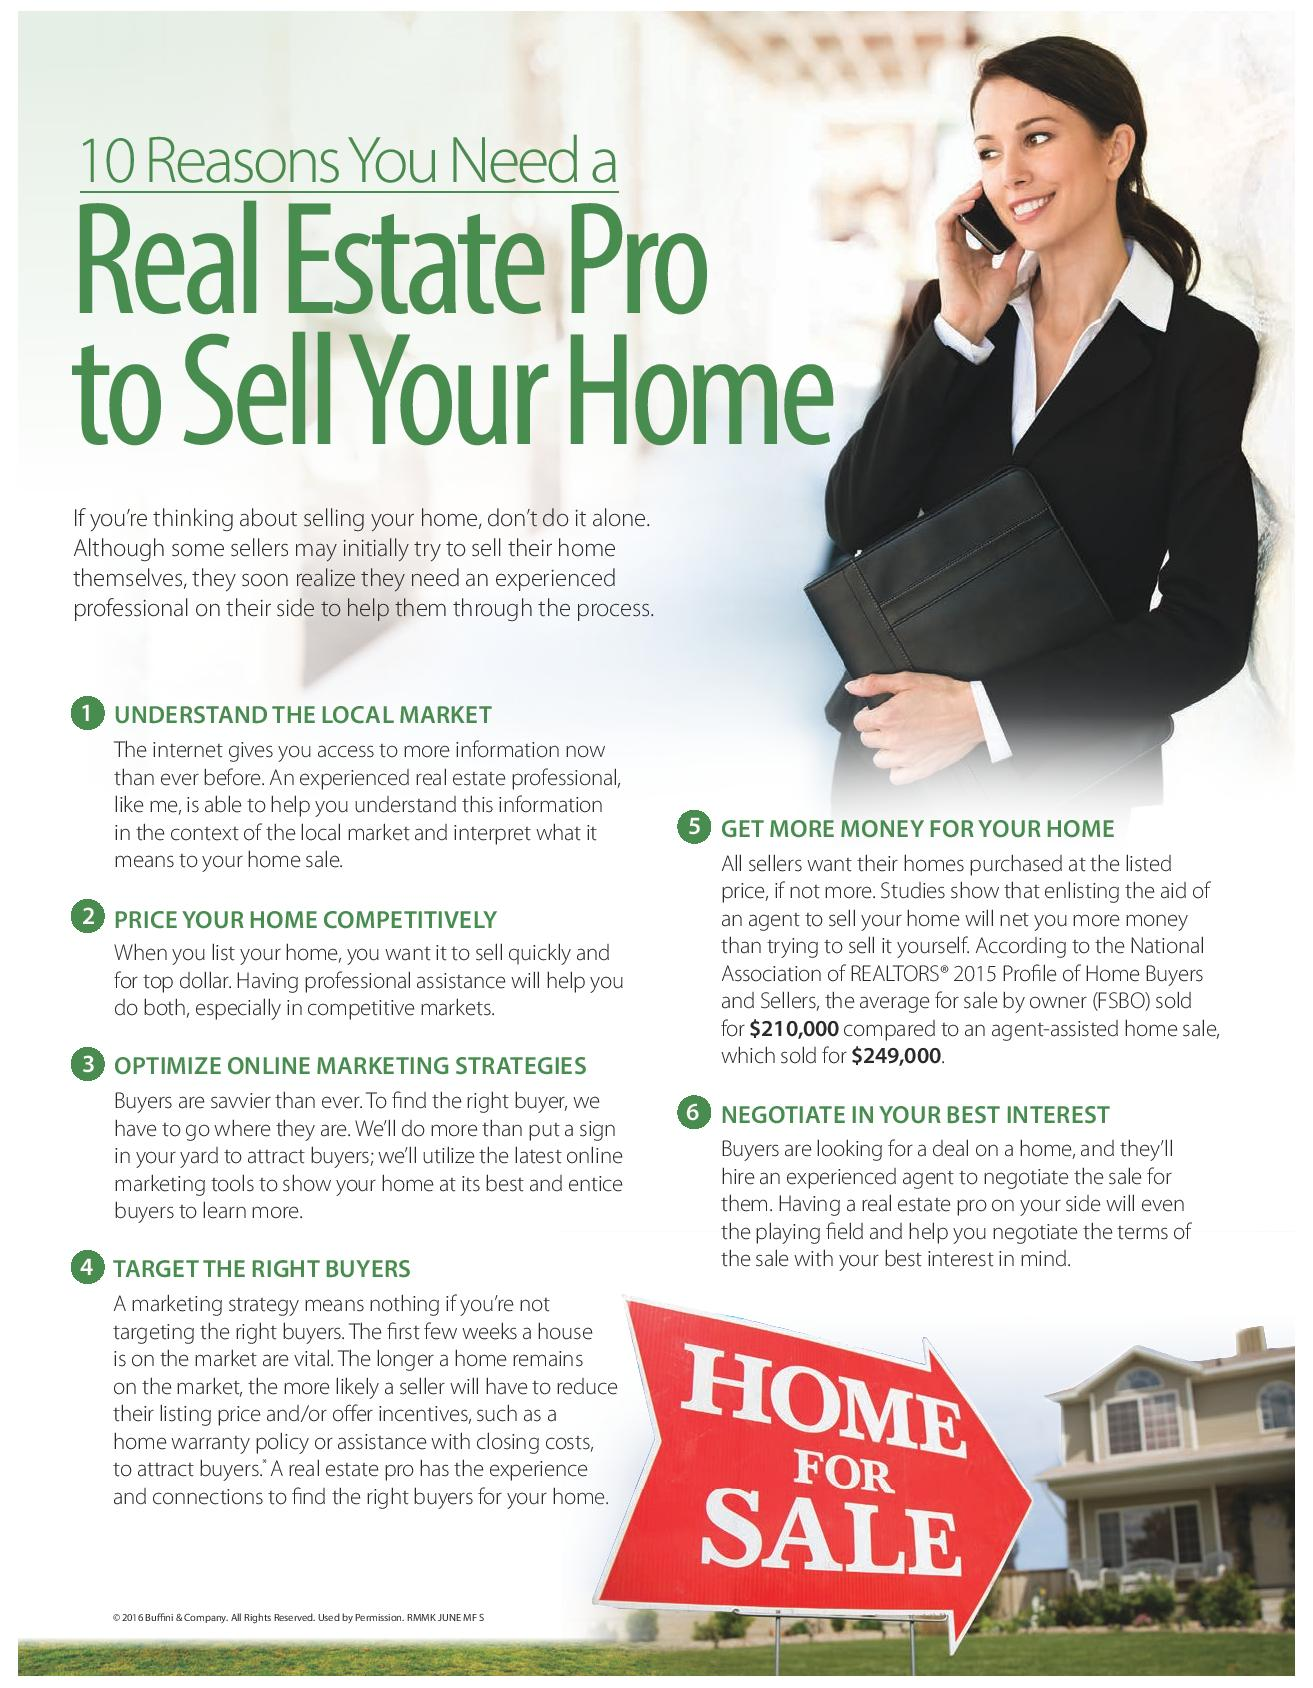 10 Reasons You Need A Real Estate Pro to Sell Your Home Part 1